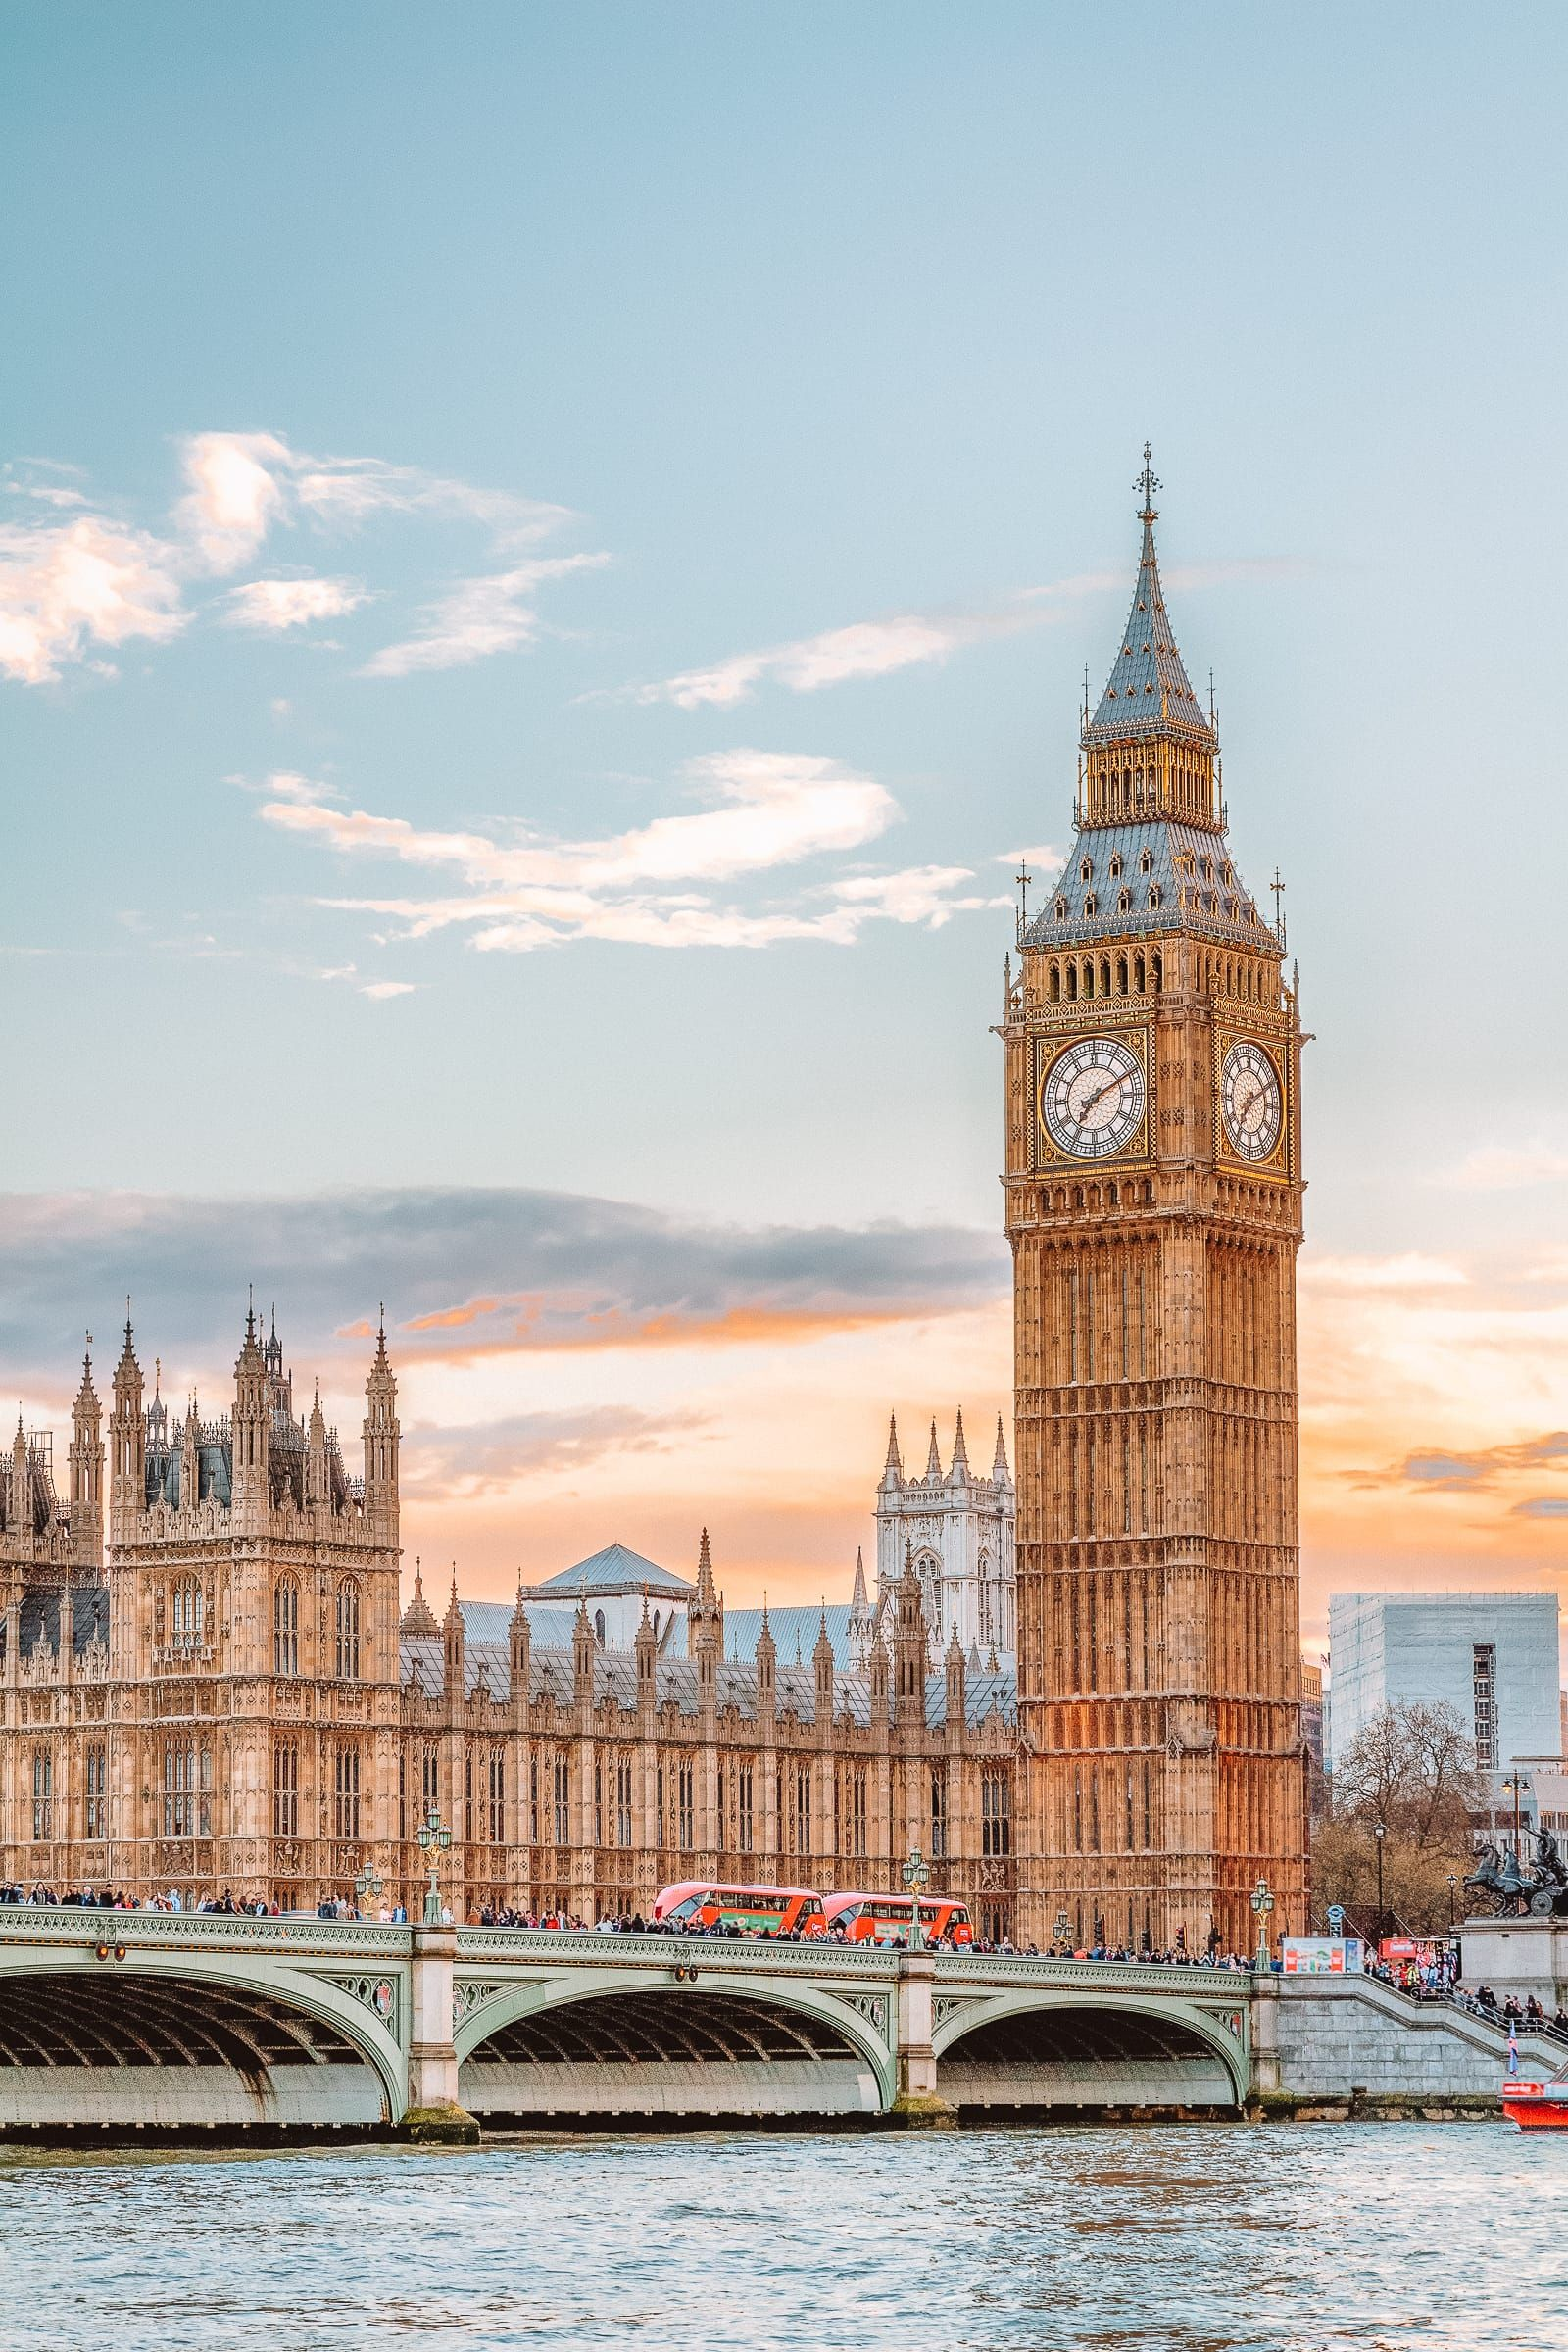 10 Beautiful Palaces In London You Have To Visit #travel #bigben #england @olivedxn